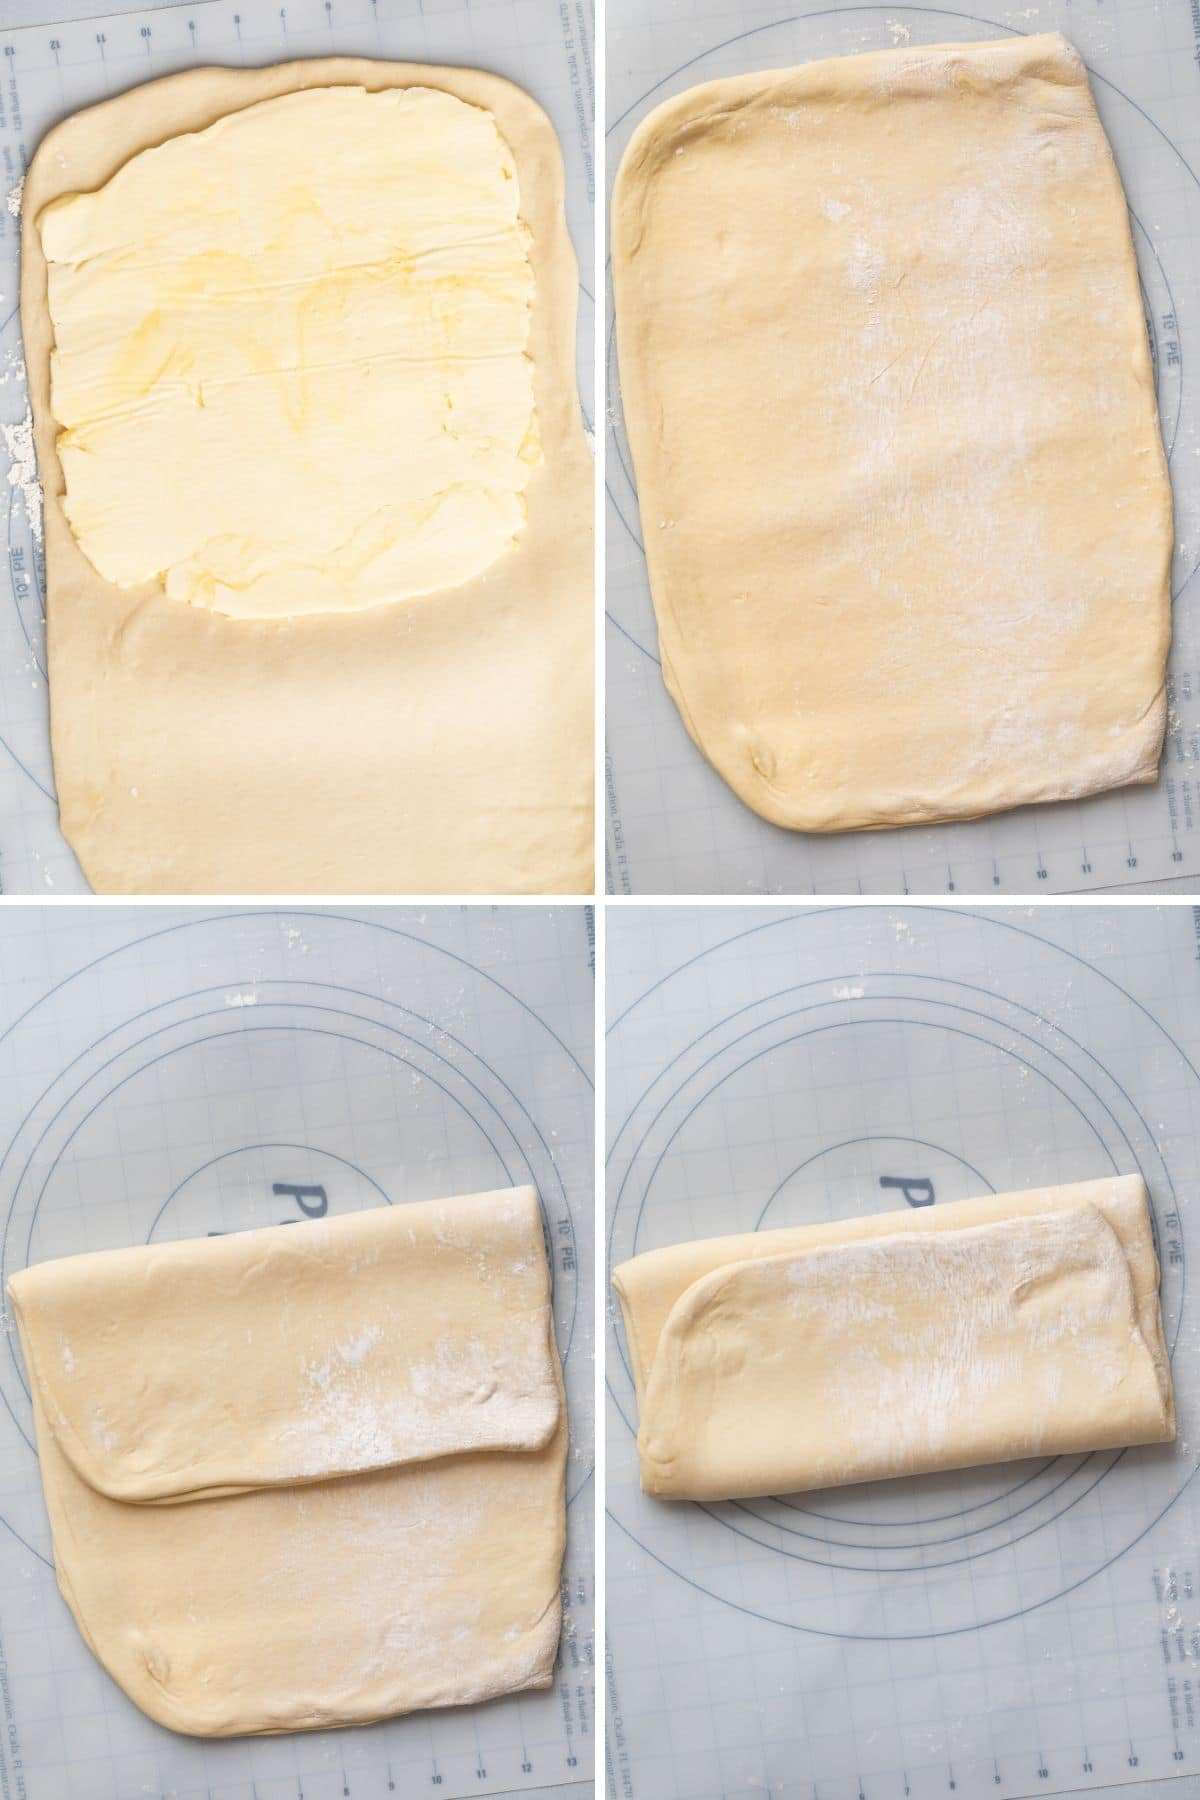 Step by step how to laminate croissant dough